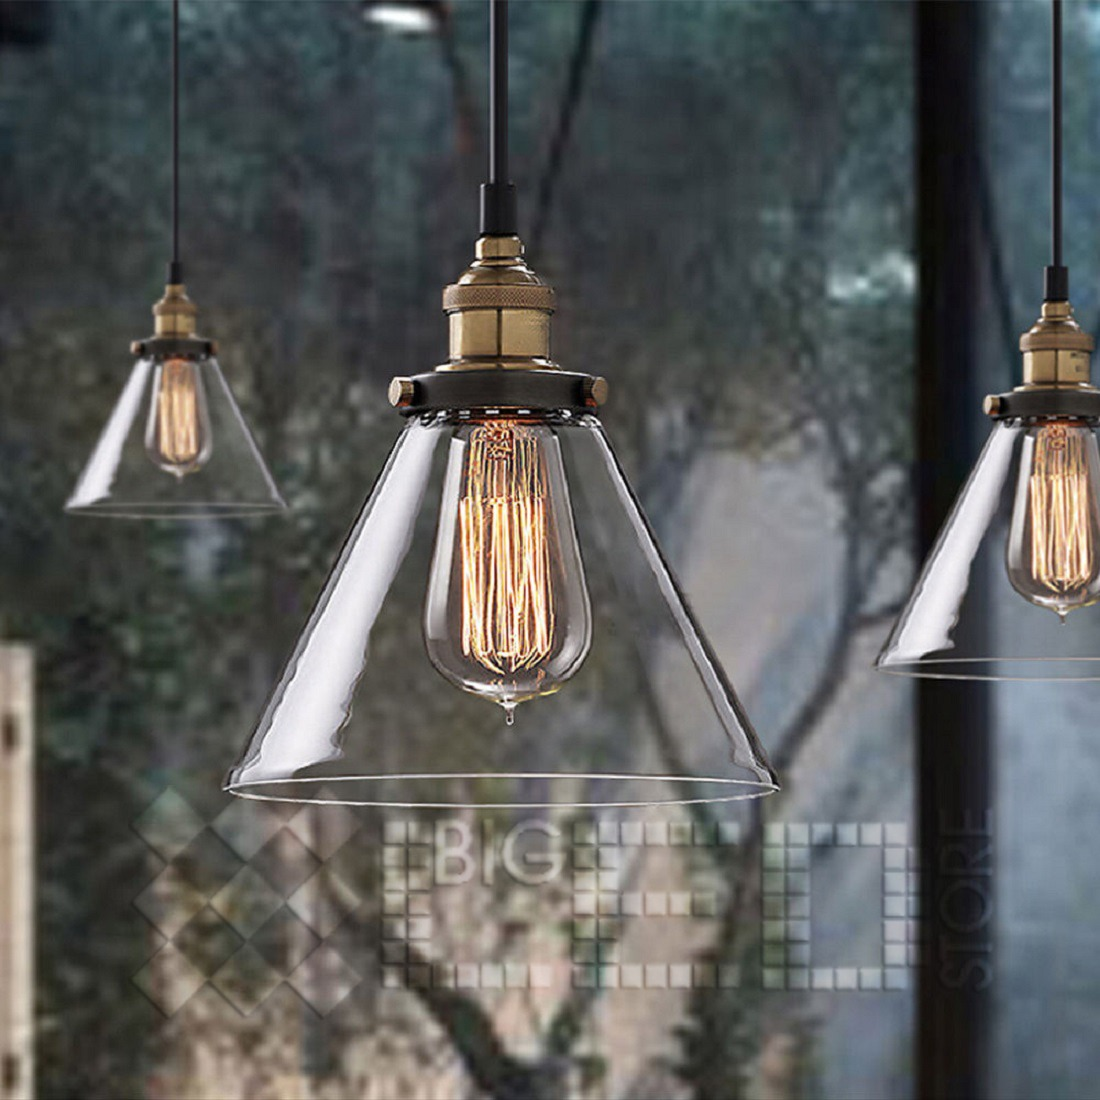 Vintage Industrial Glass Pendant Light: MODERN VINTAGE INDUSTRIAL METAL LOFT GLASS CONE CEILING